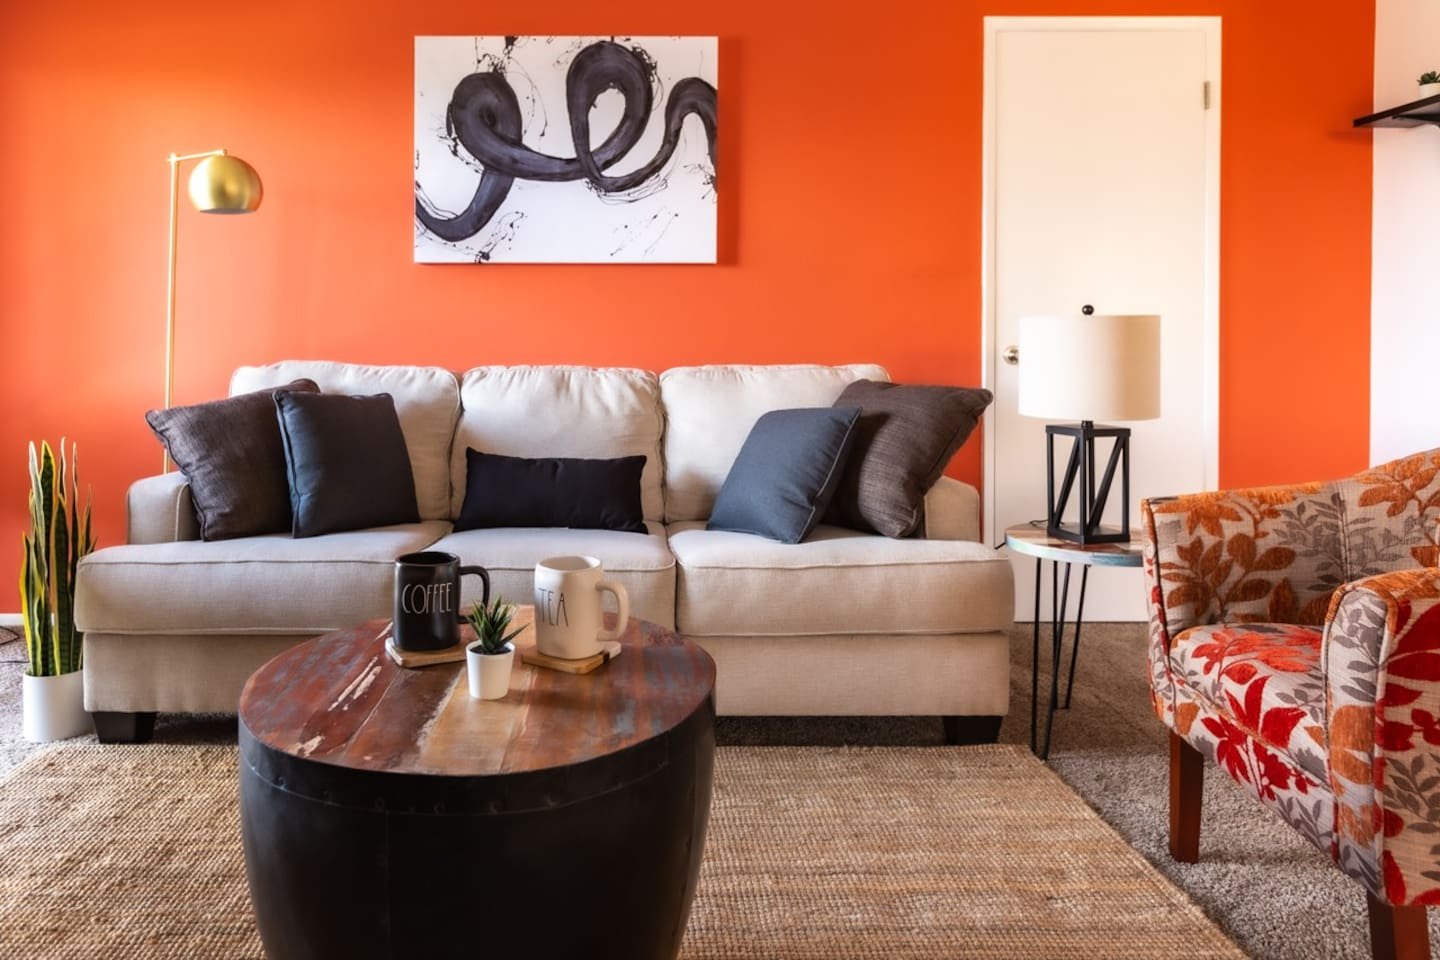 Zen Oasis to refresh and relax, your Home away from Home